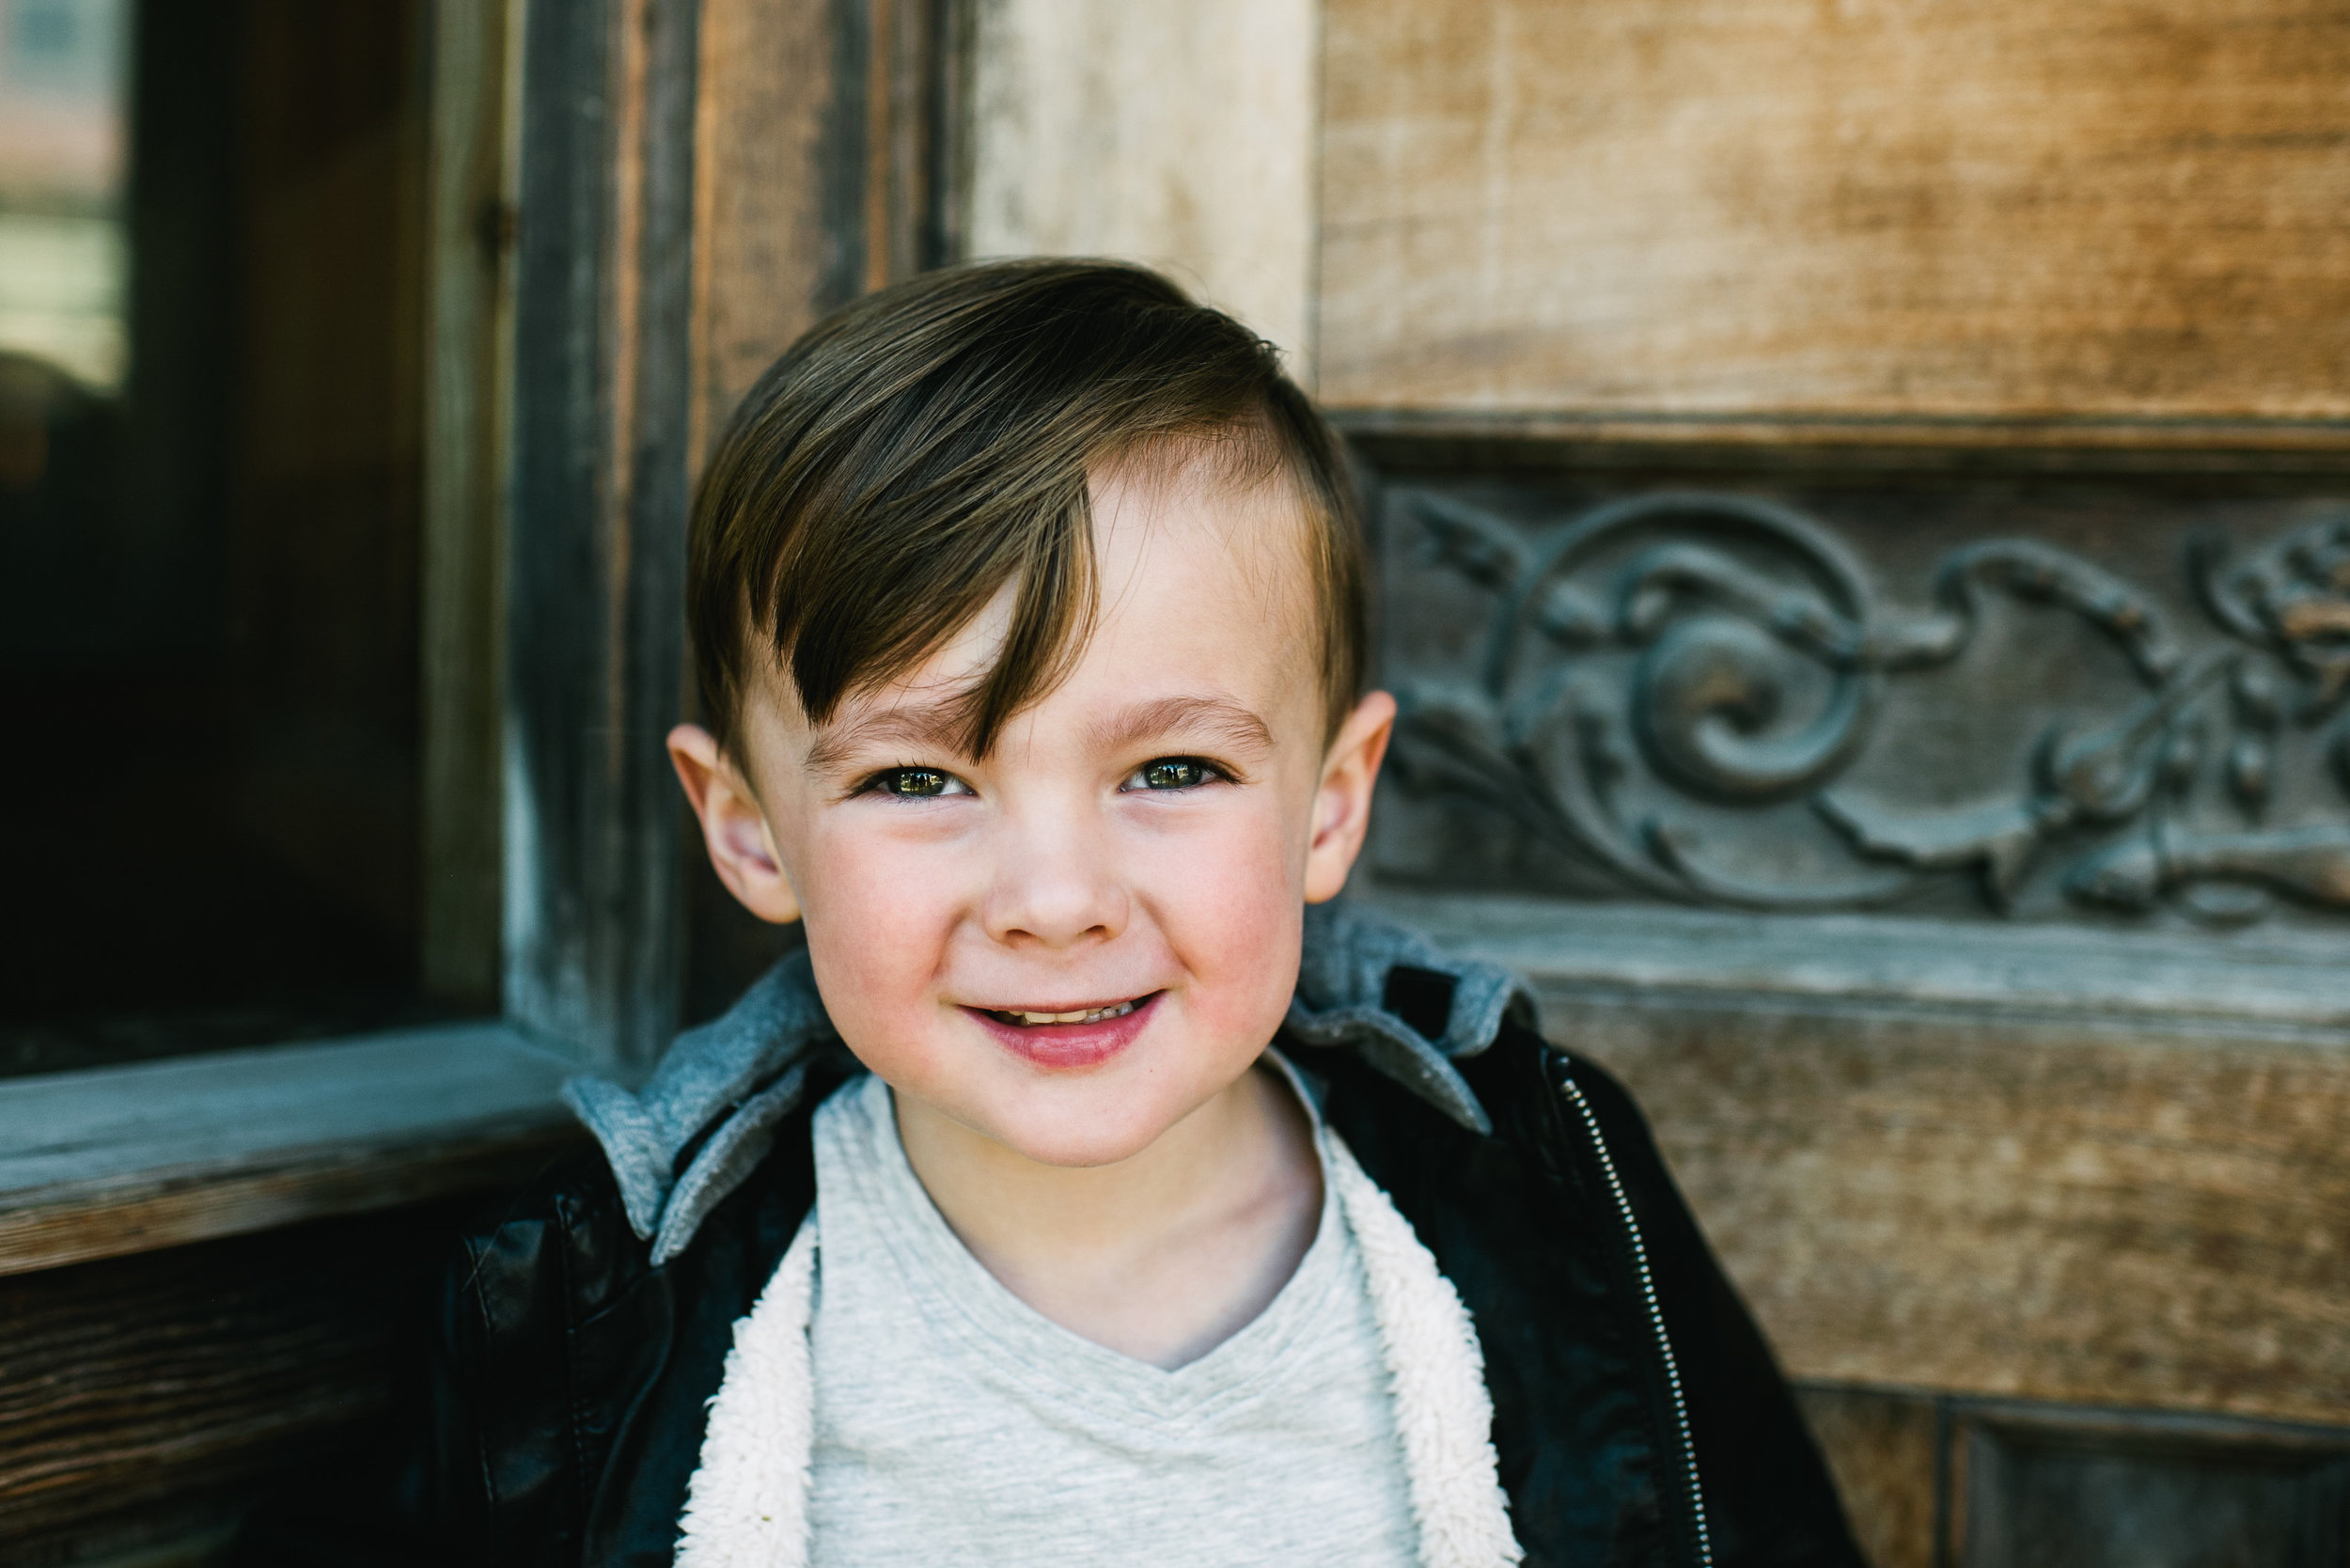 Anders - At four years old, he is kind, warm and caring.  He is full of questions and happily goes with flow.  He's an old soul that loves just about everything and wakes up every day ready to see all the good in the world.